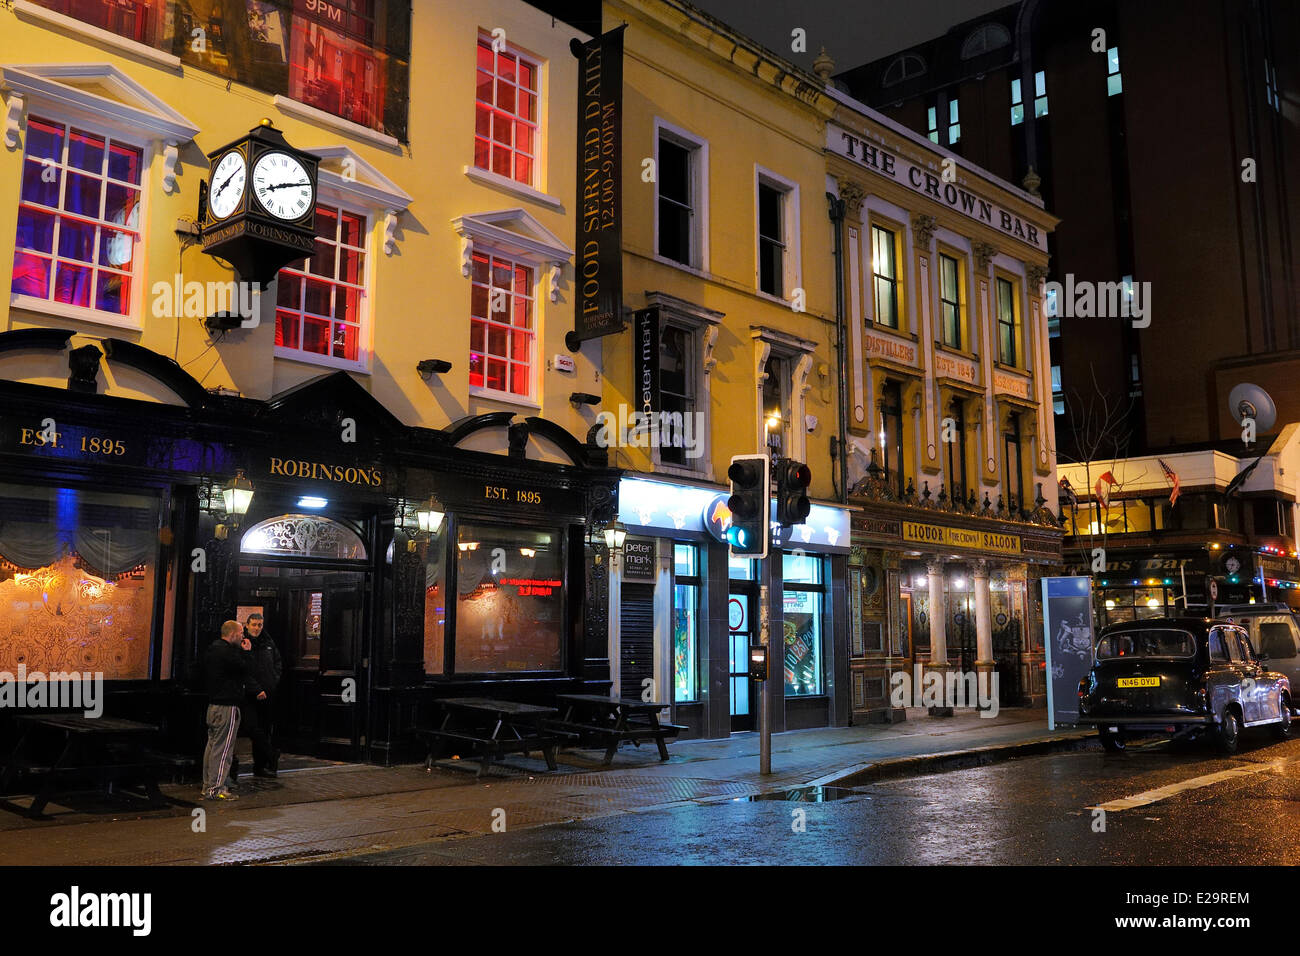 United Kingdom, Northern Ireland, Belfast, The Crown Liquor Saloon was founded in 1826 and is the unique pub to - Stock Image